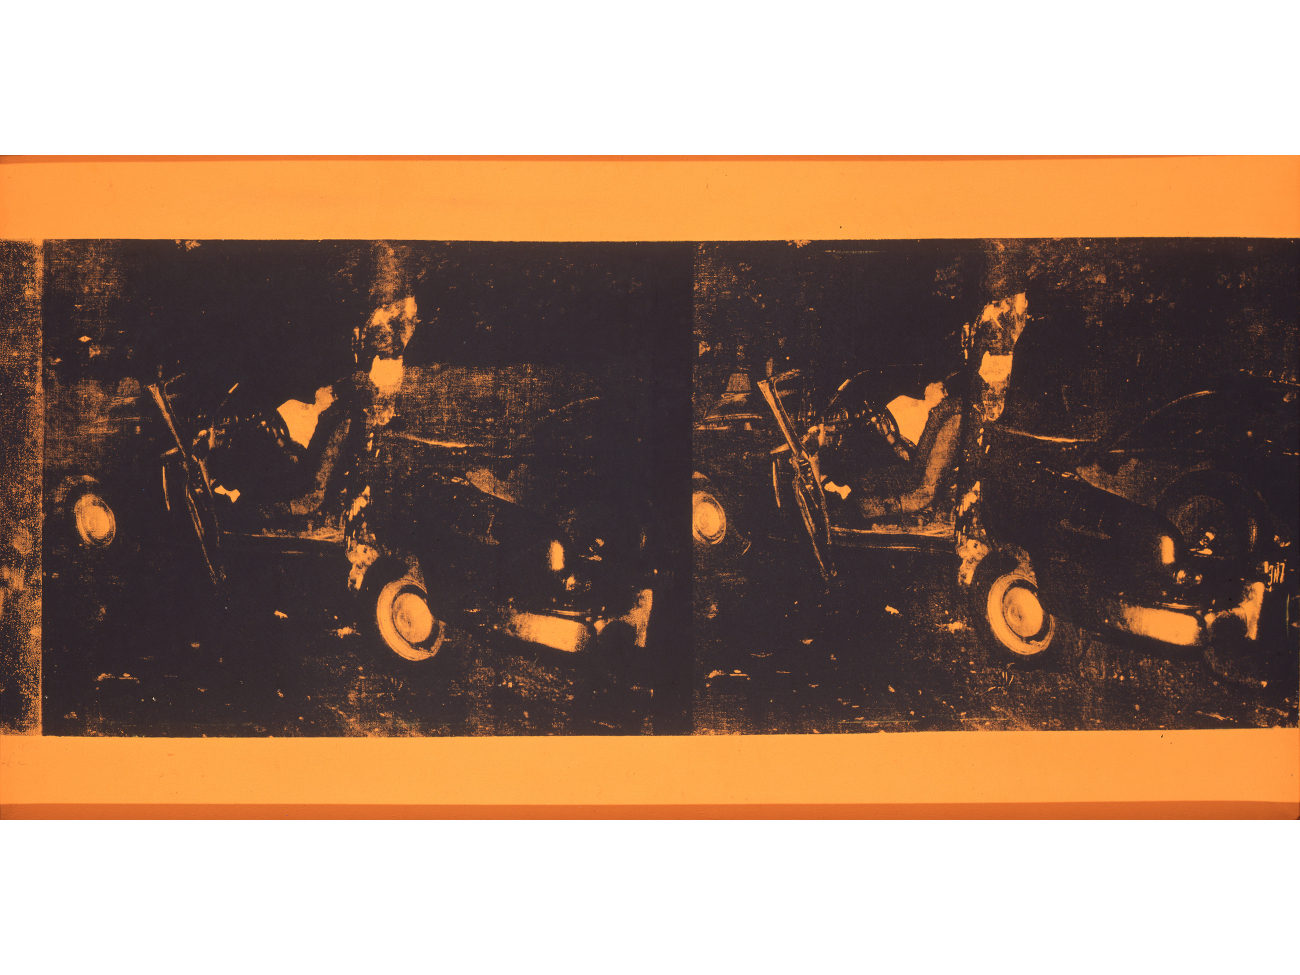 Andy Warhol, Car Crash, 1963. Sérigraphie sur toile, 71 x 136,5 cm. © The Andy Warhol Foundation / Licensed by Adagp, Paris, 2019. Photo © Direction des Musées de Dunkerque, LAAC, photo Jacques Quecq d'Henripret